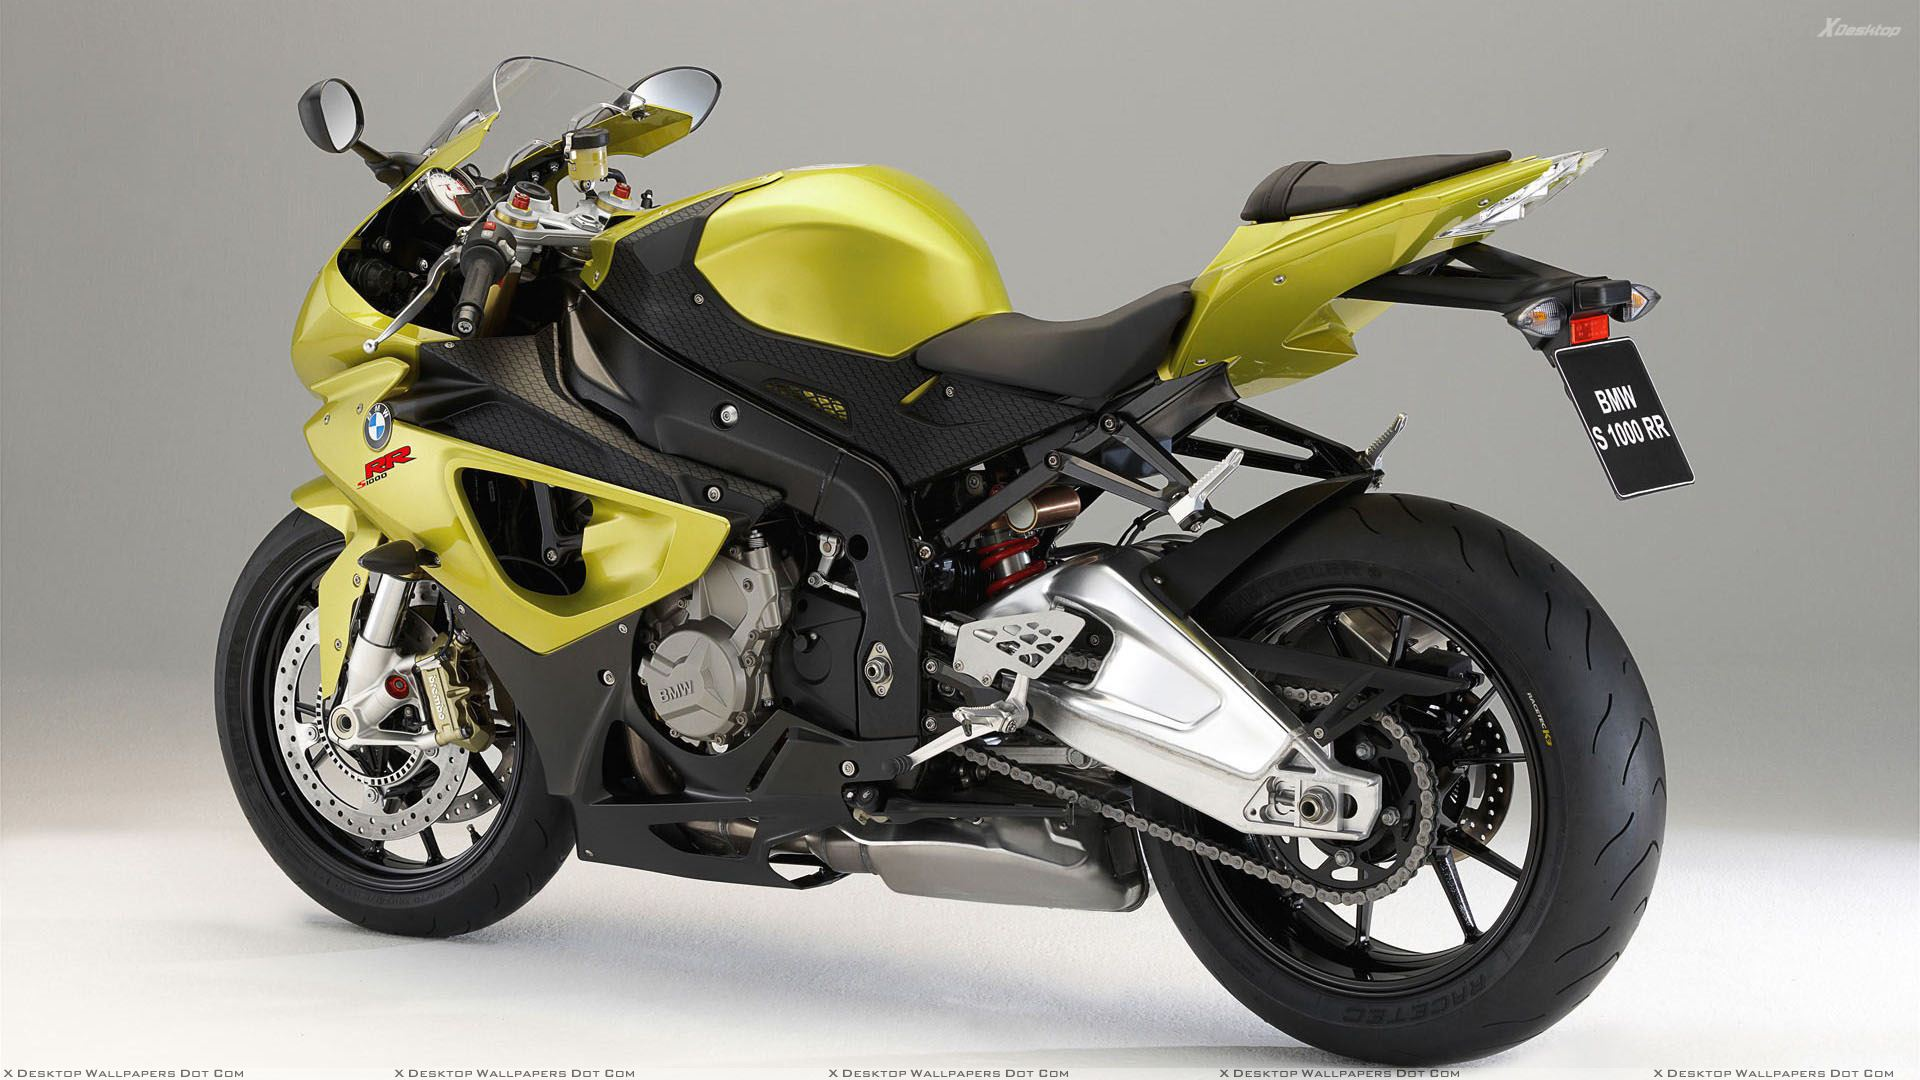 Black Bmw S1000rr Wallpapers For Computers Cute Boy And Girl Kiss Wallpaper Cartoon Red Rash On Glans Std Picture Ksmb Text Club Images